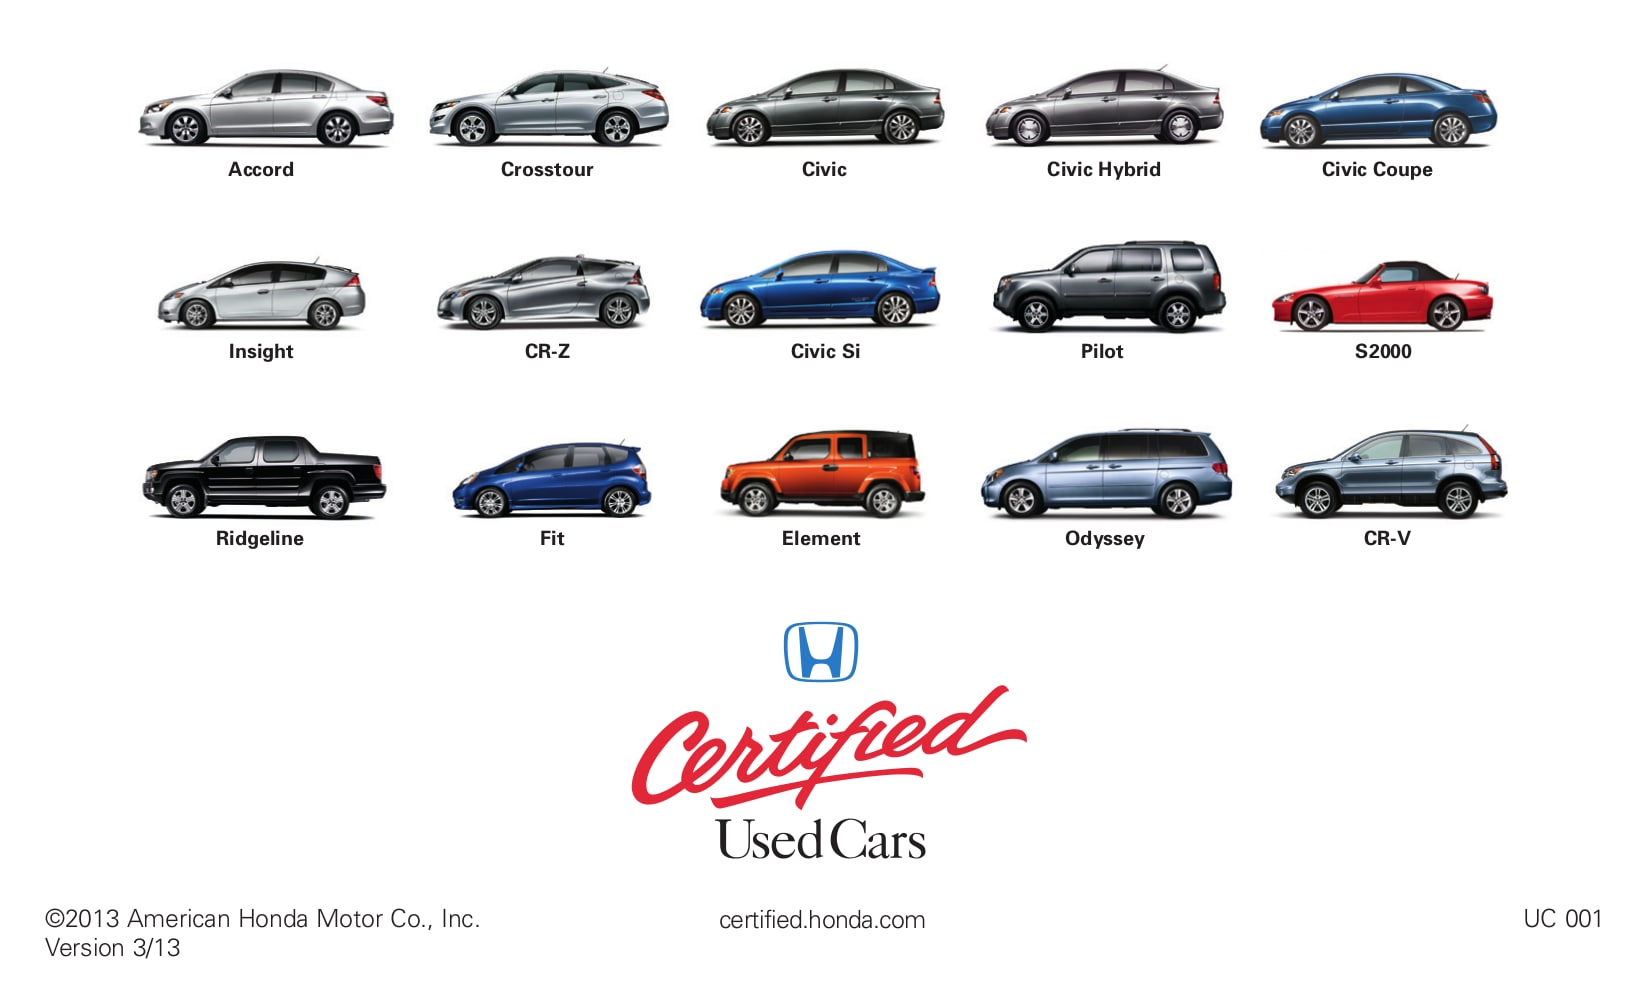 Coeur D Alene Honda >> Certified Pre-Owned Honda in Spokane, WA